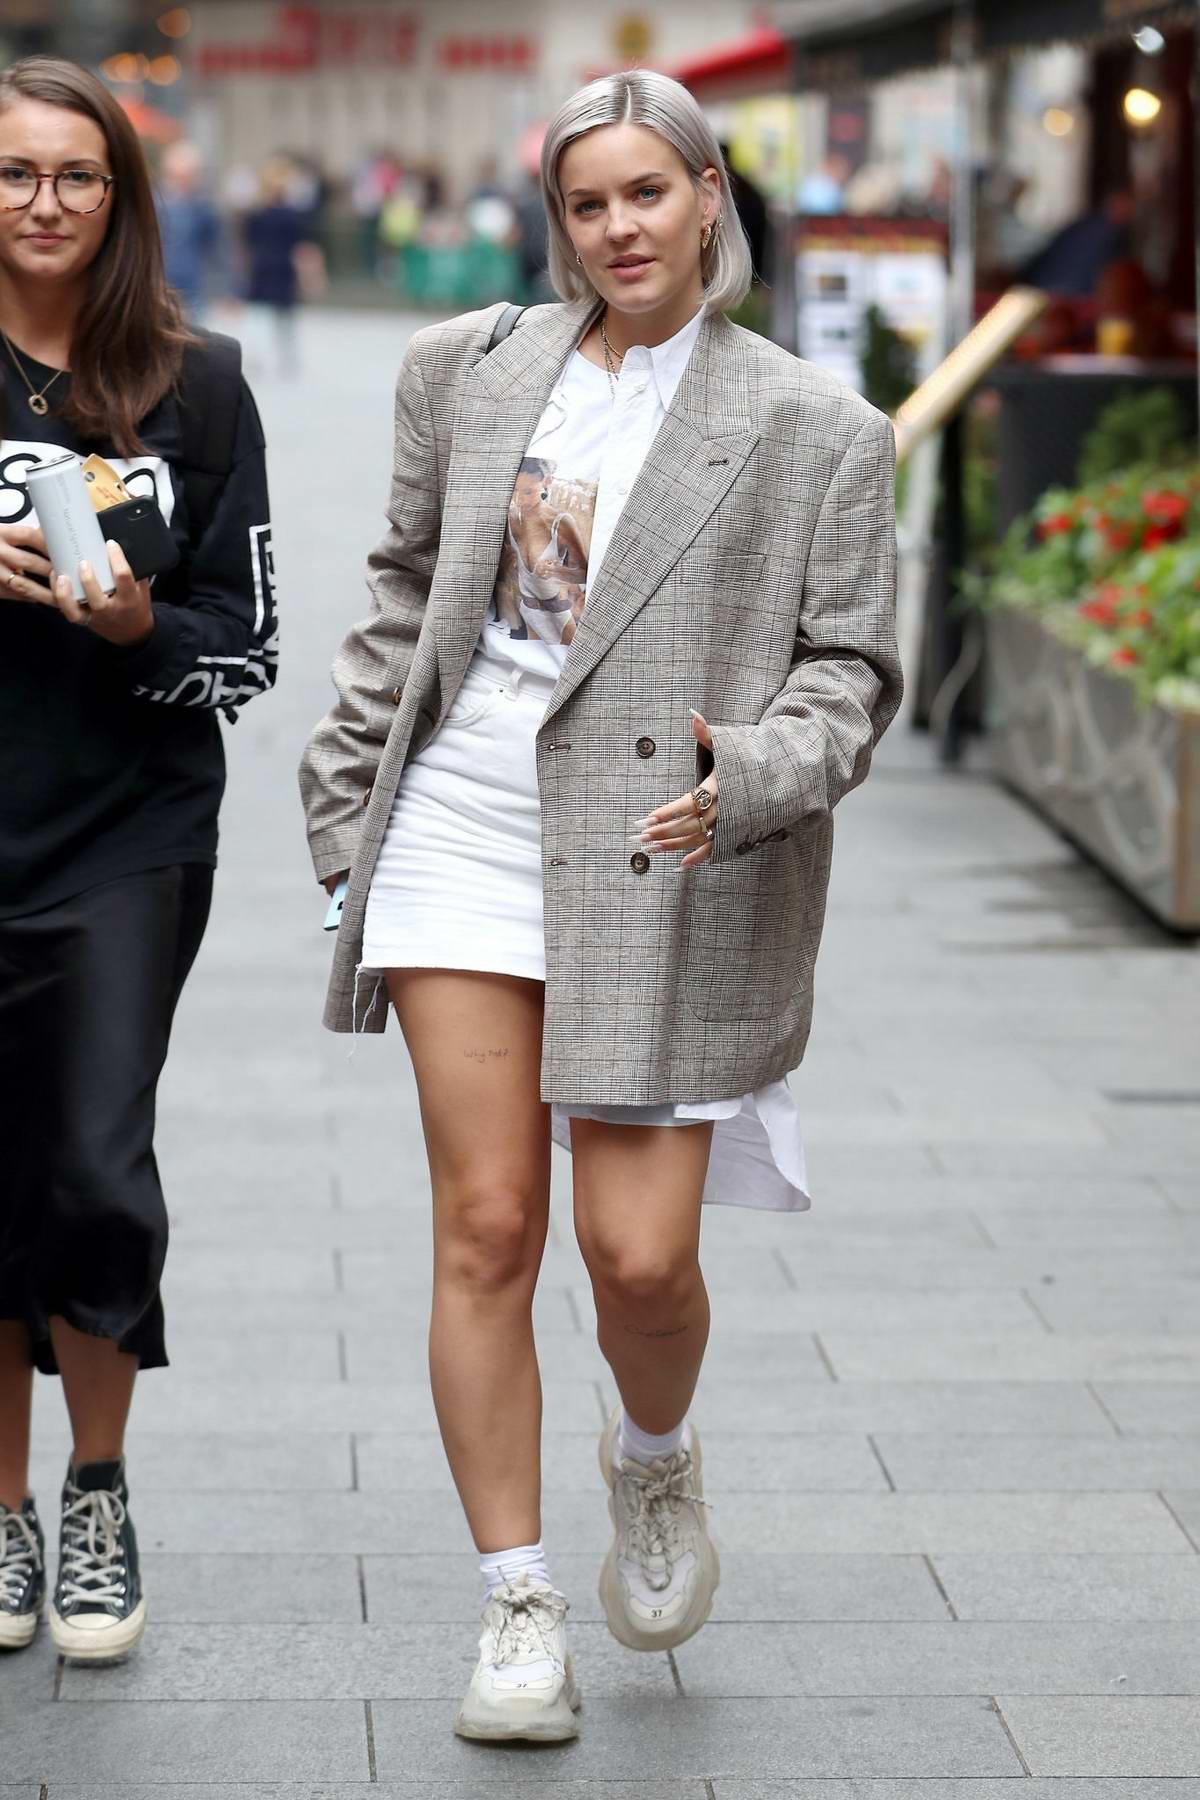 Anne-Marie is all smiles as she leaves Global Radio Studios in London, UK